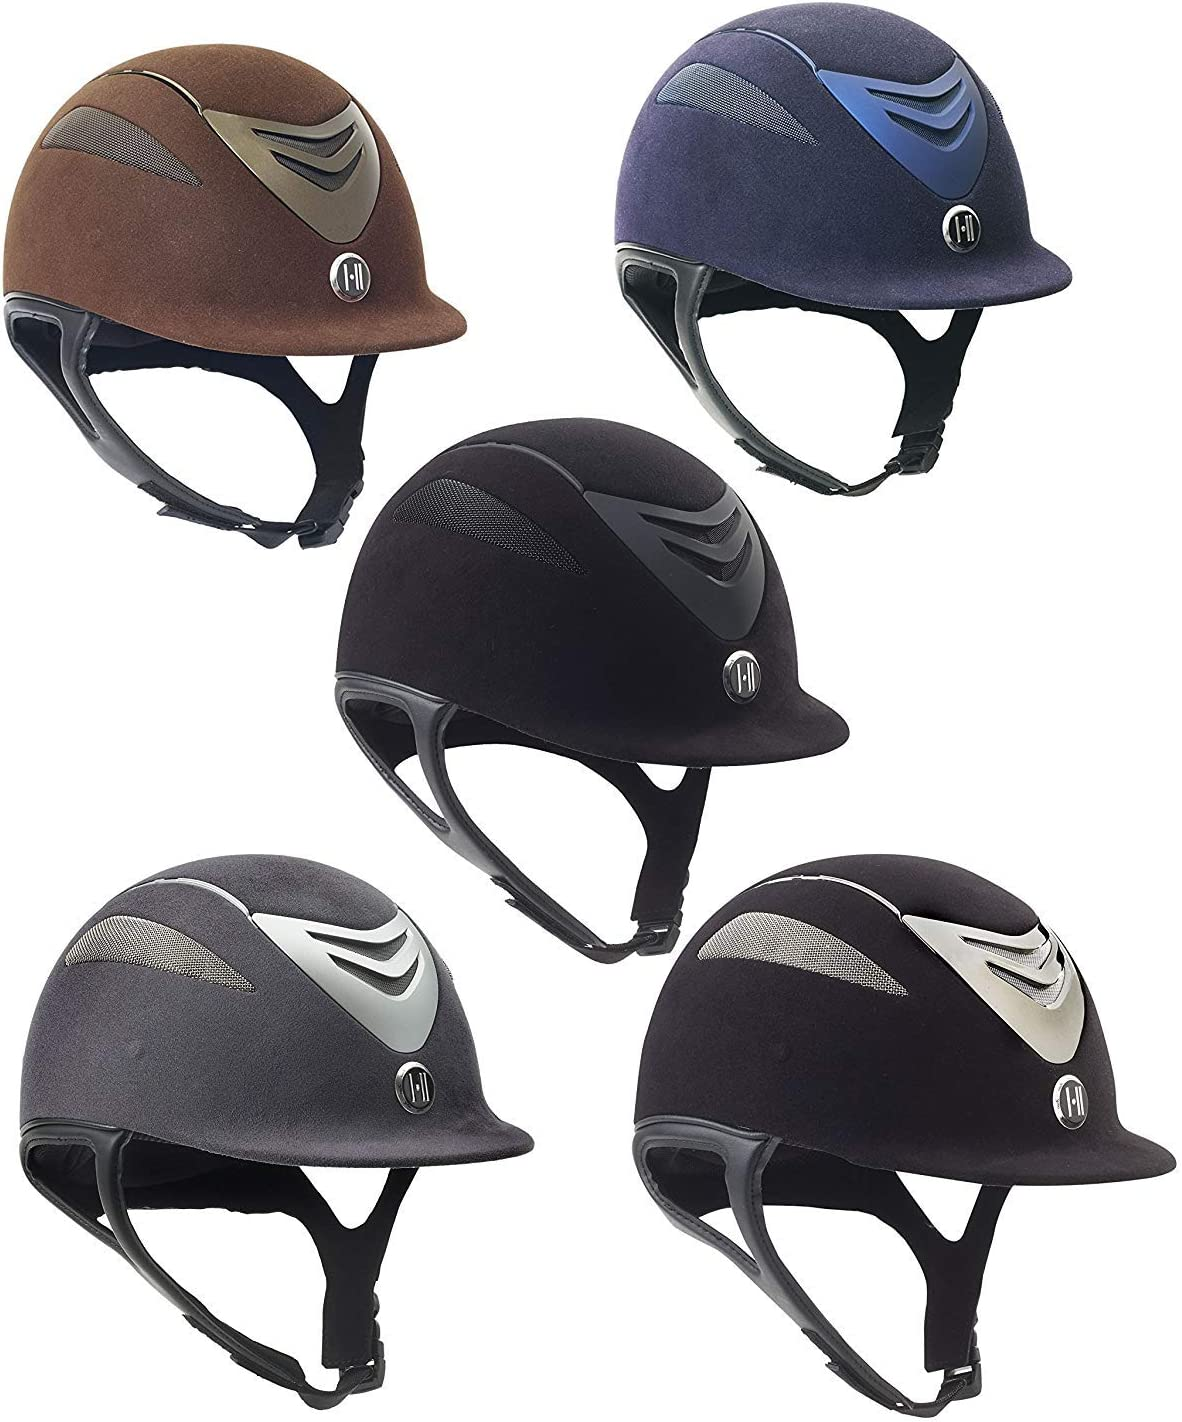 One K Unisex Long Beach Mall Defender Suede Protective Helmet Riding Sma Cheap mail order shopping Black